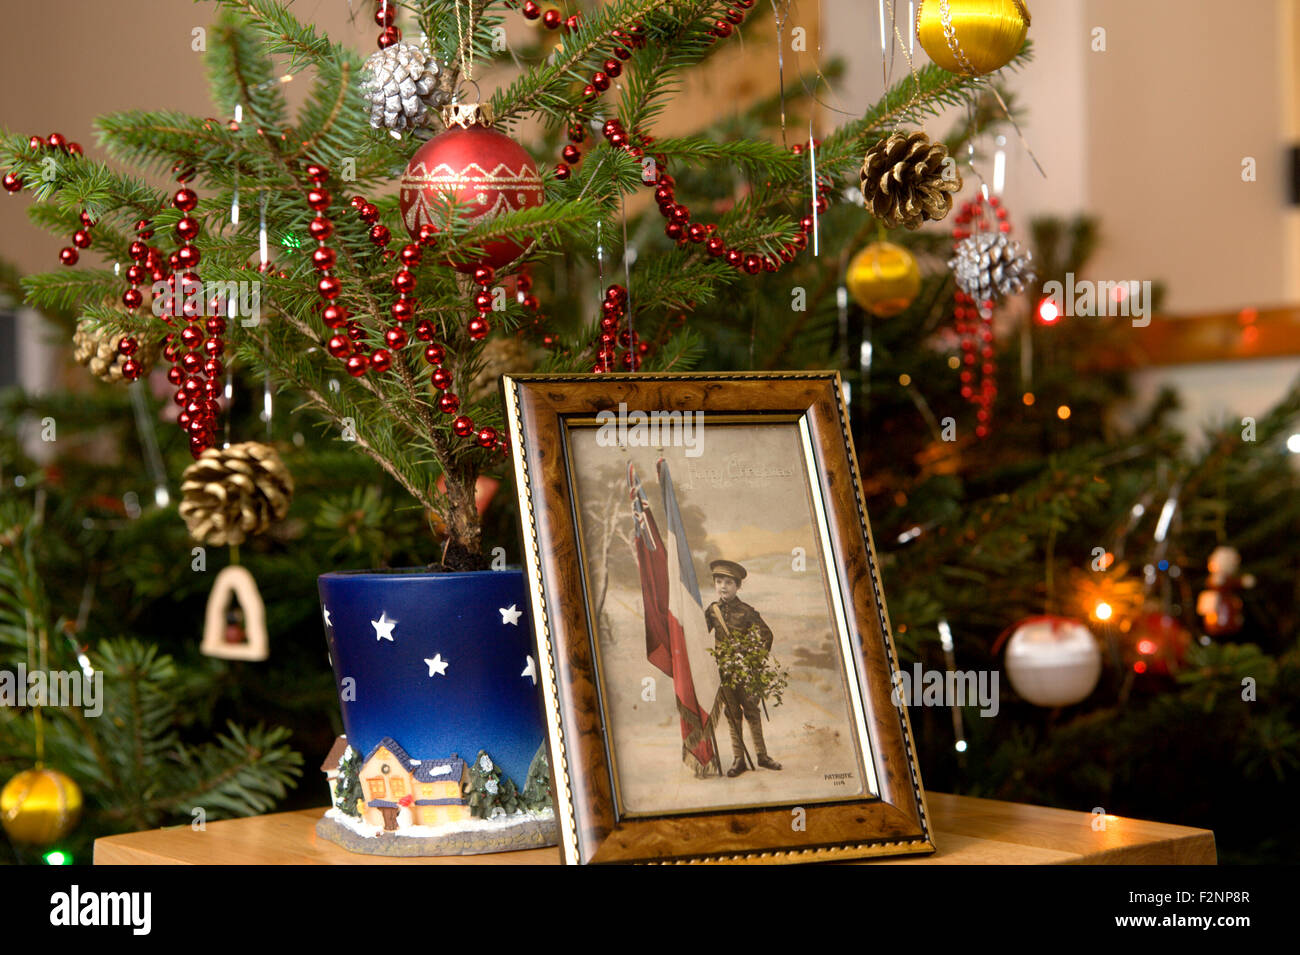 Nostalgic postcard from the first world war framed and standing in front of a decorated traditional Christmas tree - Stock Image